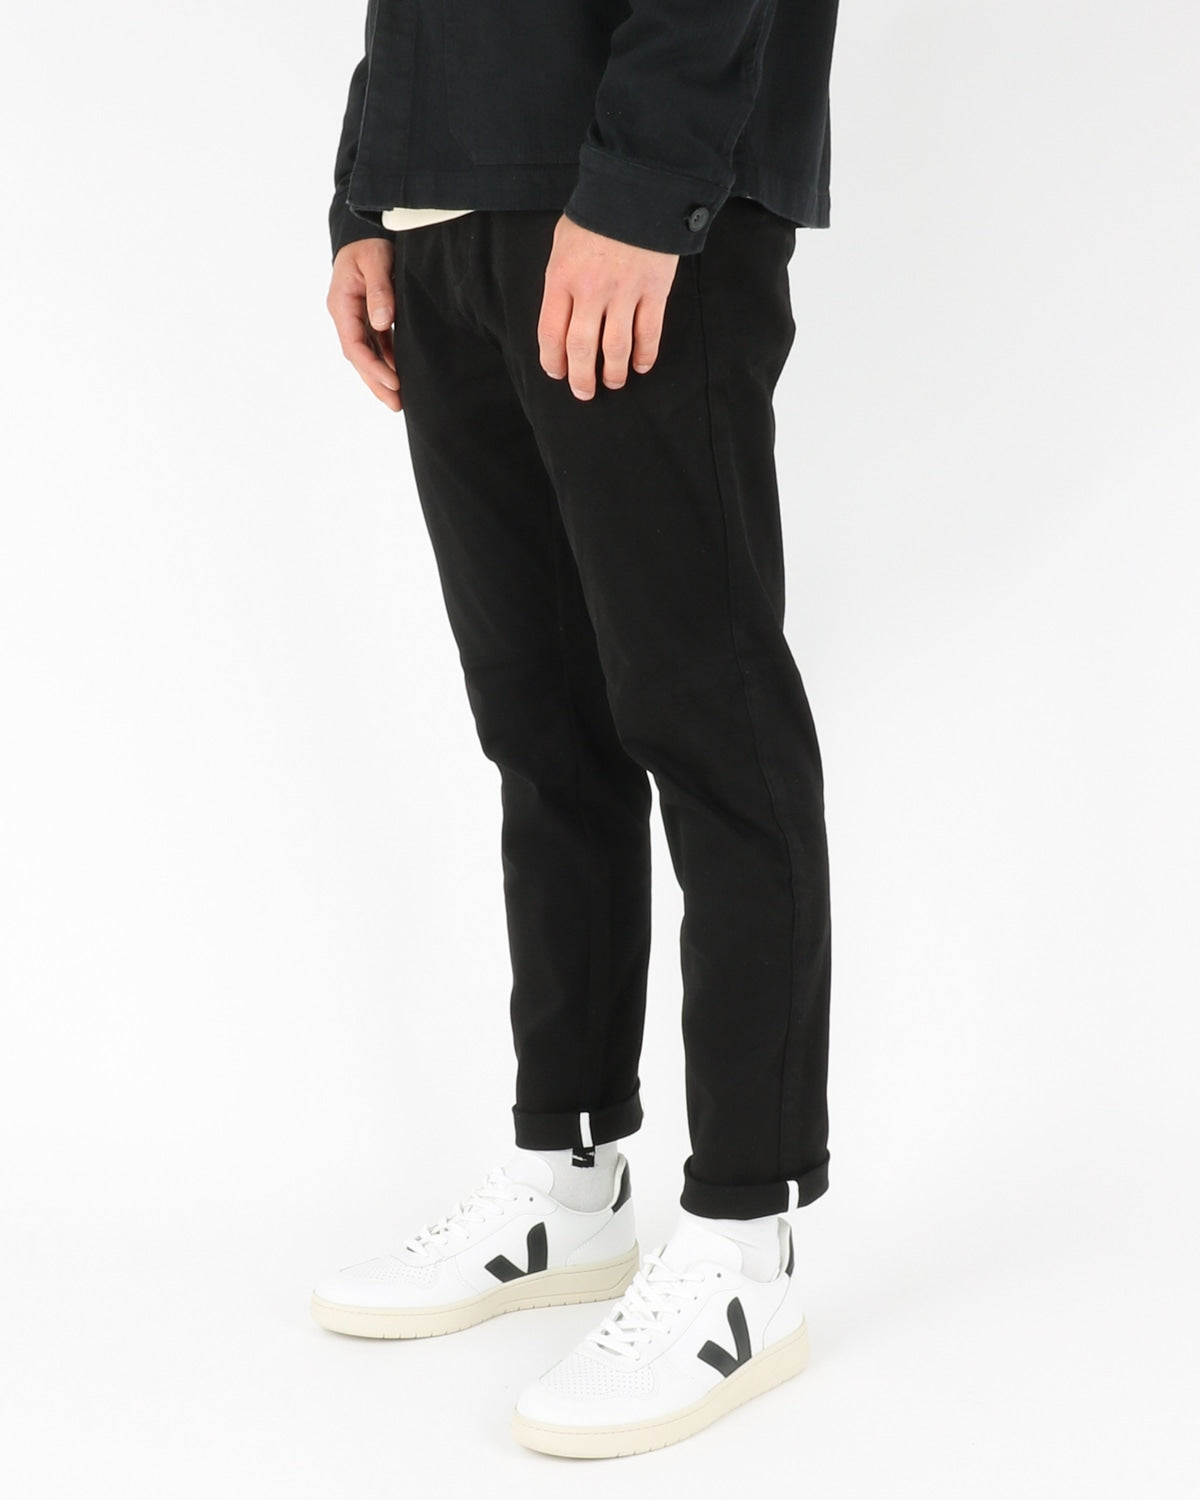 legends_century trousers_black_2_3